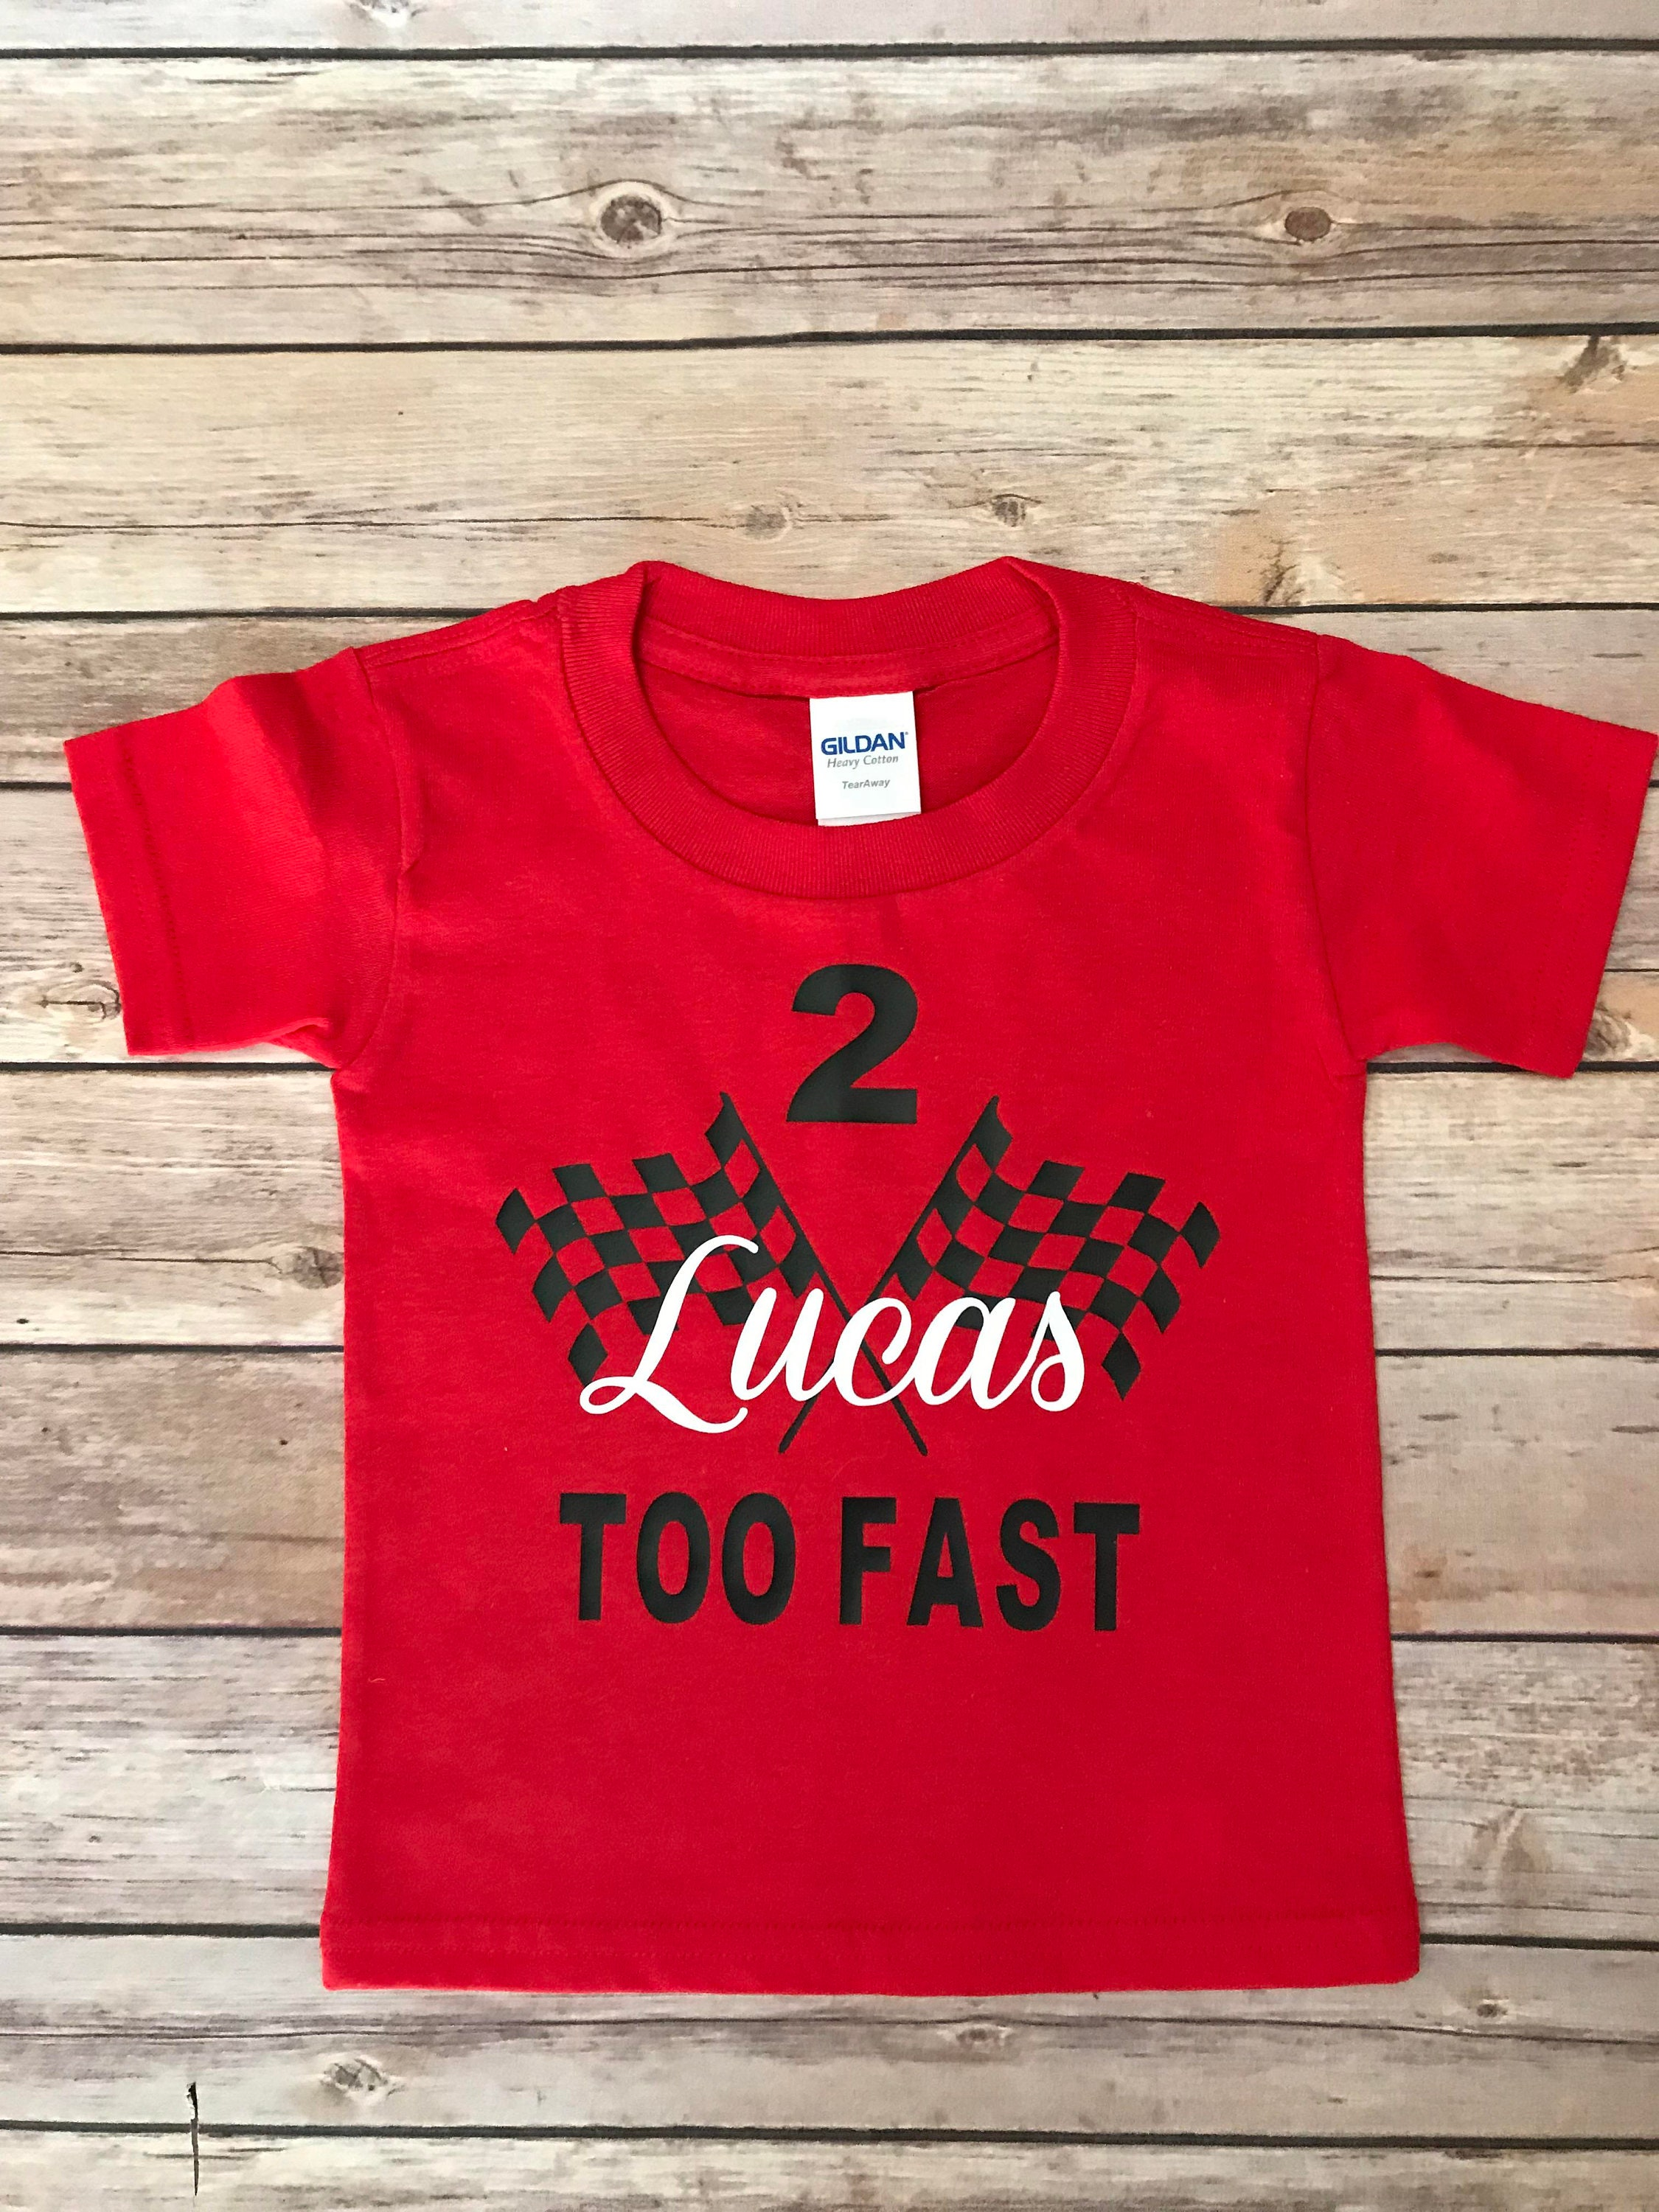 2nd Birthday Shirt Cars Themed For Child Turning 2